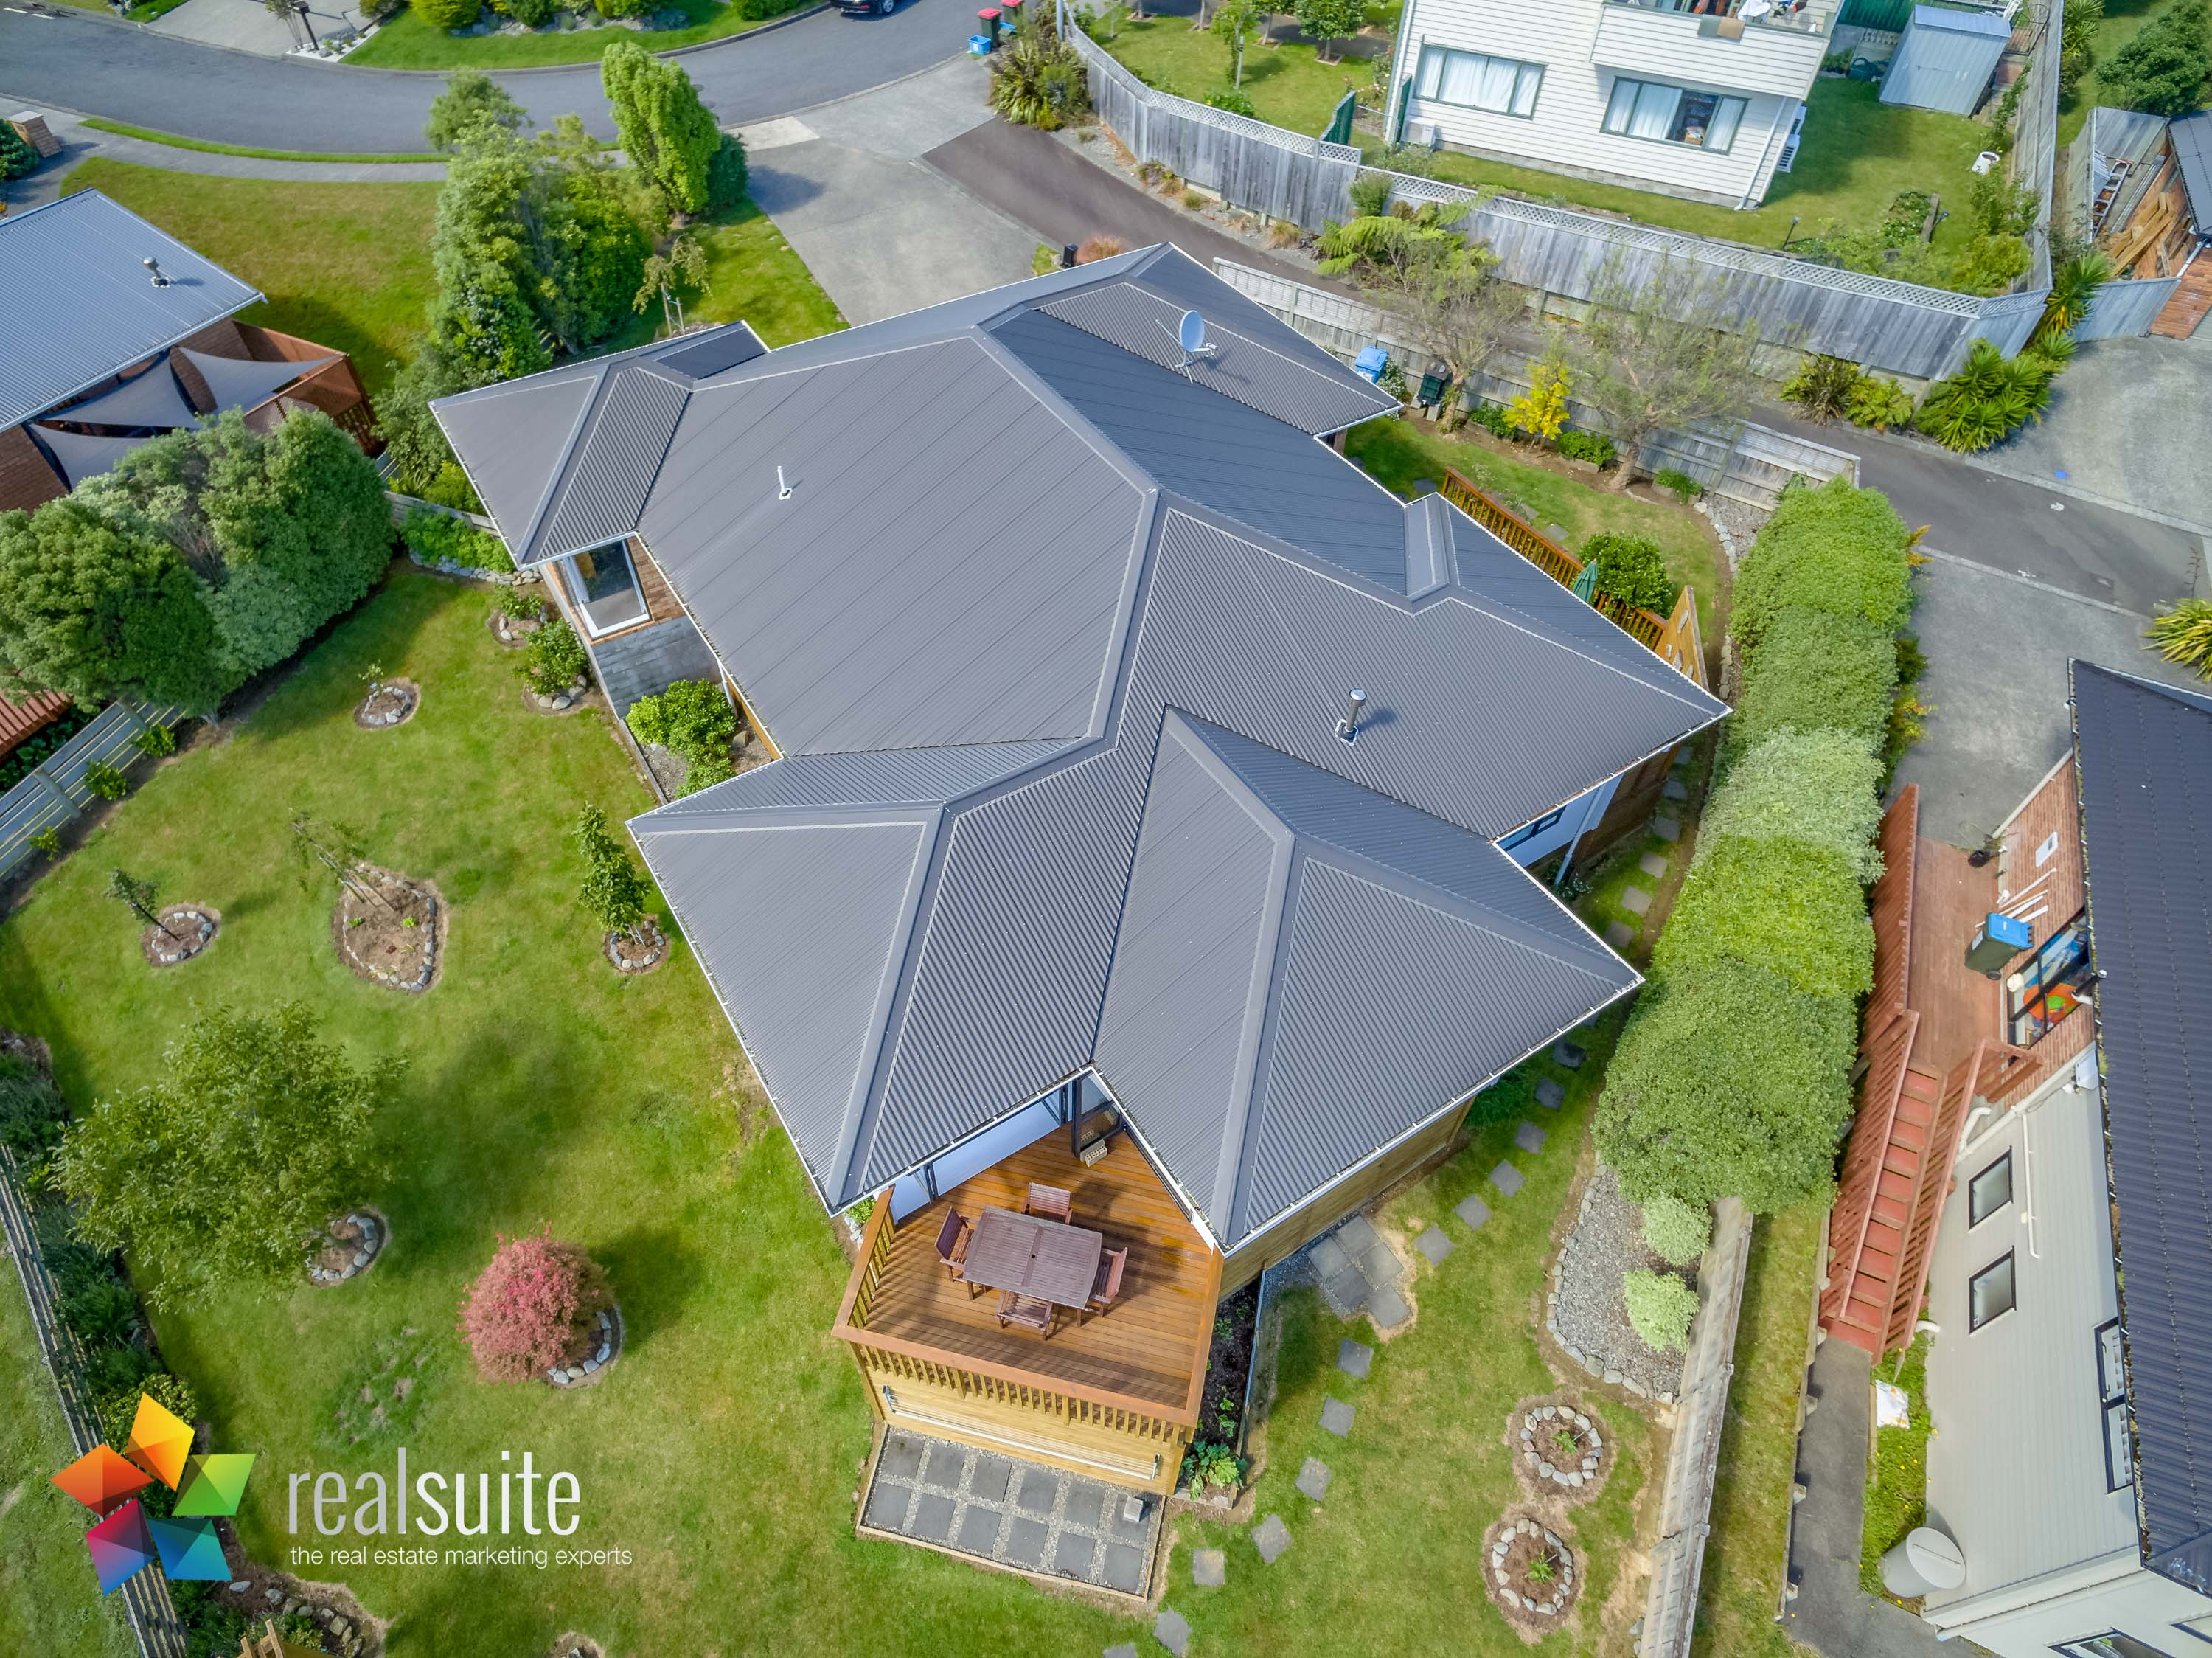 9 McEwen Crescent, Riverstone Terraces Aerial 0390